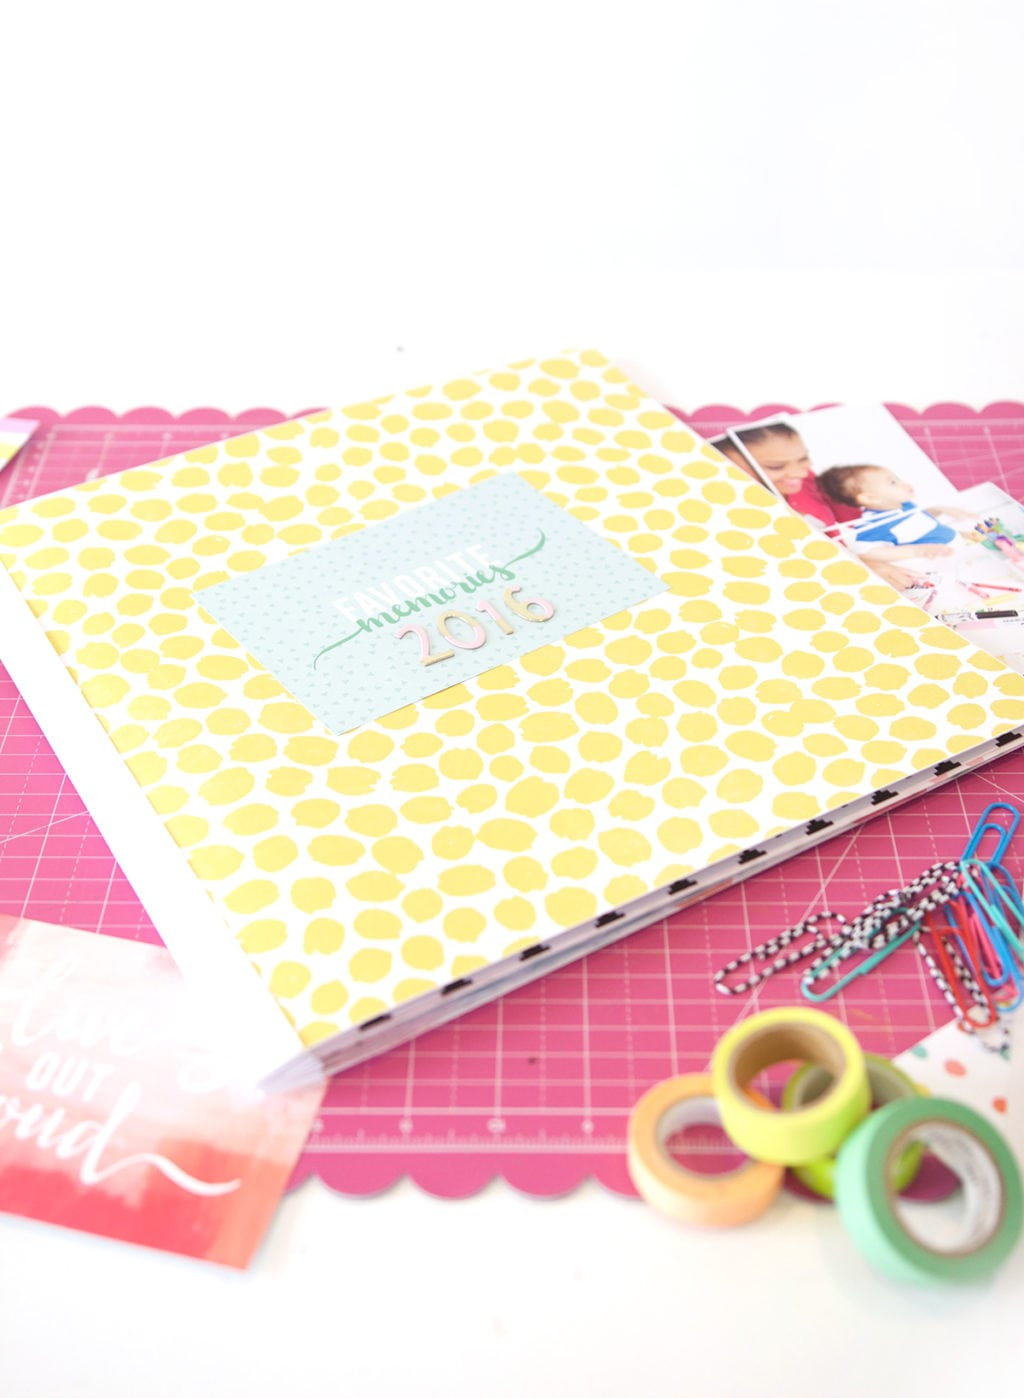 It's easy to create a DIY scrapbook with basic supplies and photos edited with the new Adobe Photoshop 15